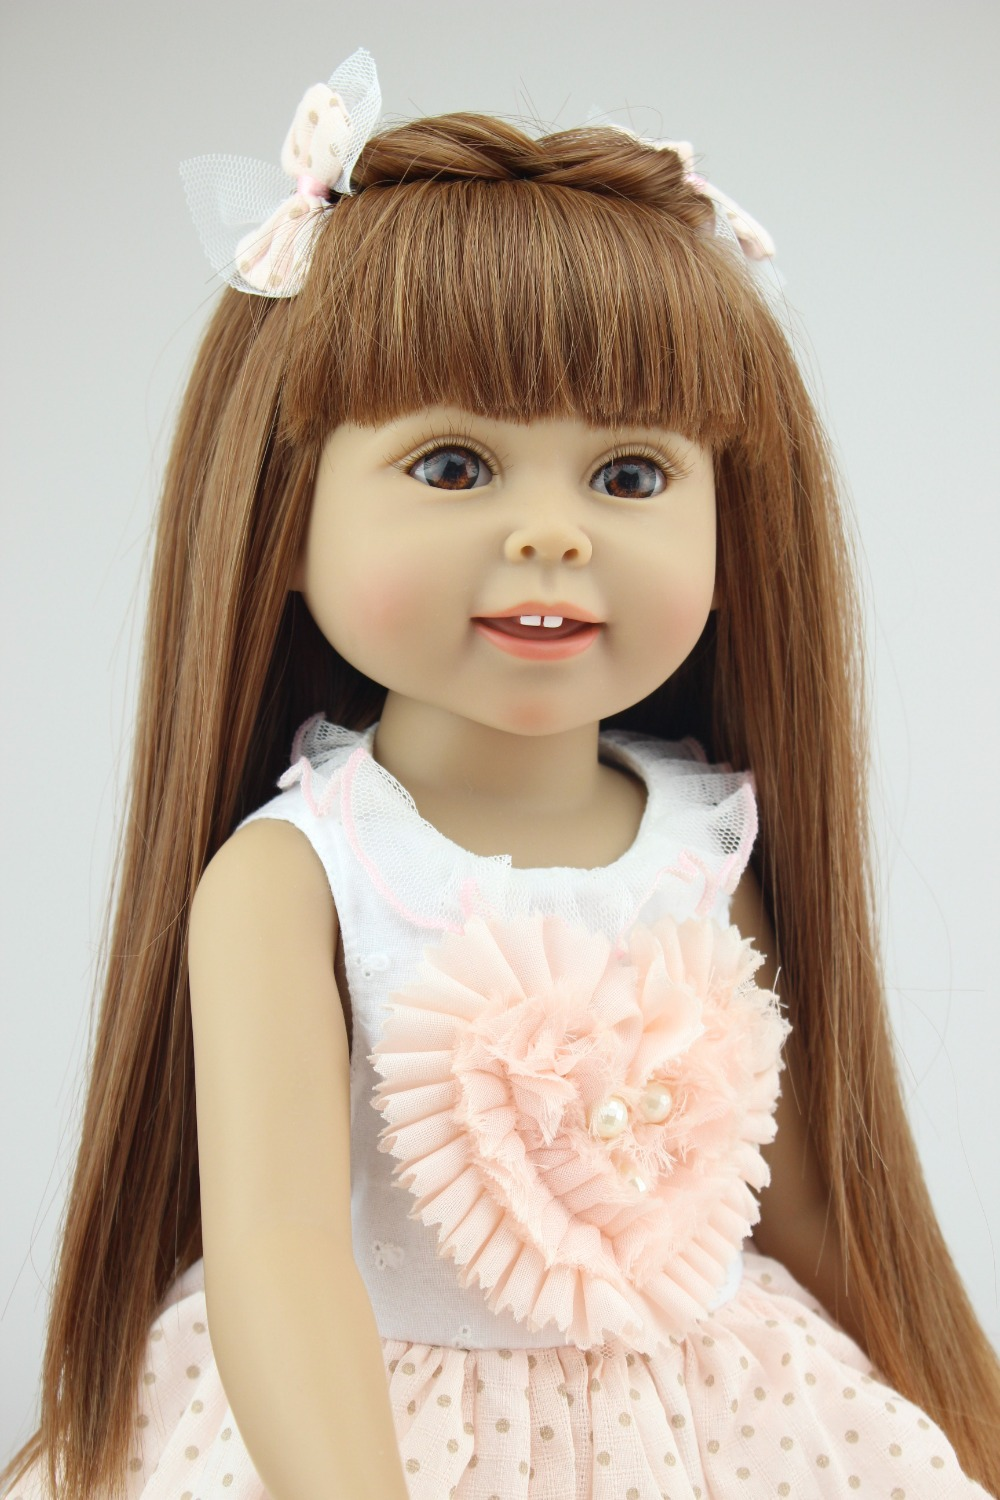 Incredible Hairstyles For Ag Dolls With Long Hair Baby Dolls Ideas Hairstyles For Women Draintrainus